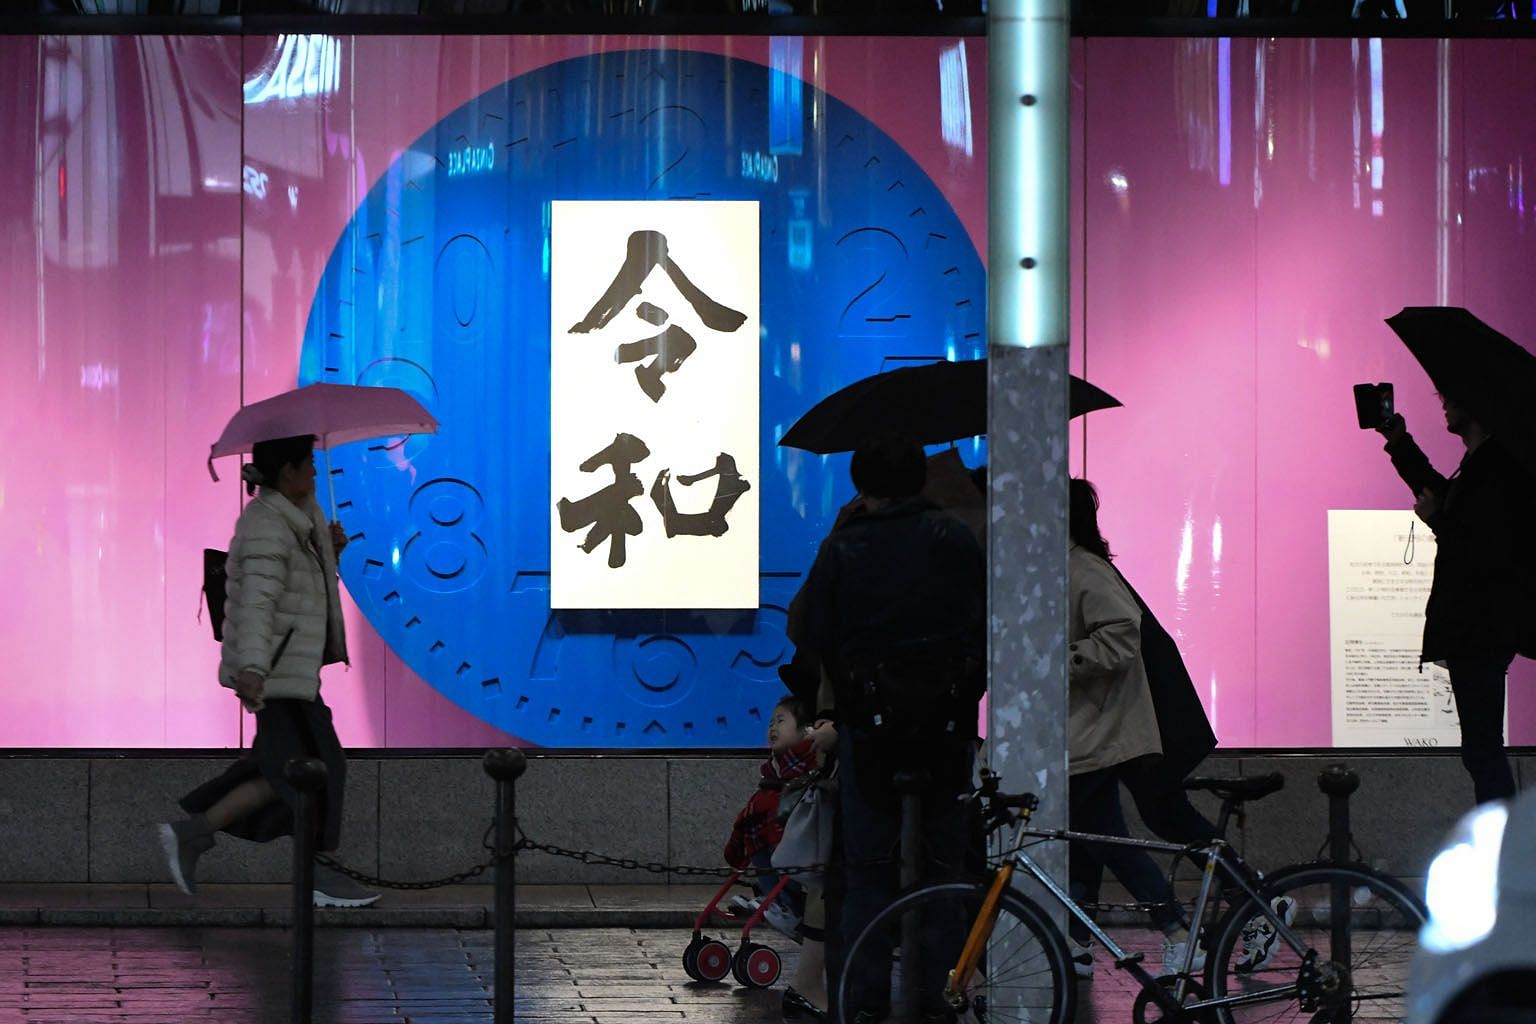 A display in Tokyo with Japan's new era name, Reiwa, to be used from May 1 when the Crown Prince assumes the throne. Reiwa will be the second era name, following Heisei, chosen under the sovereignty of the people. The name was derived from a poem in